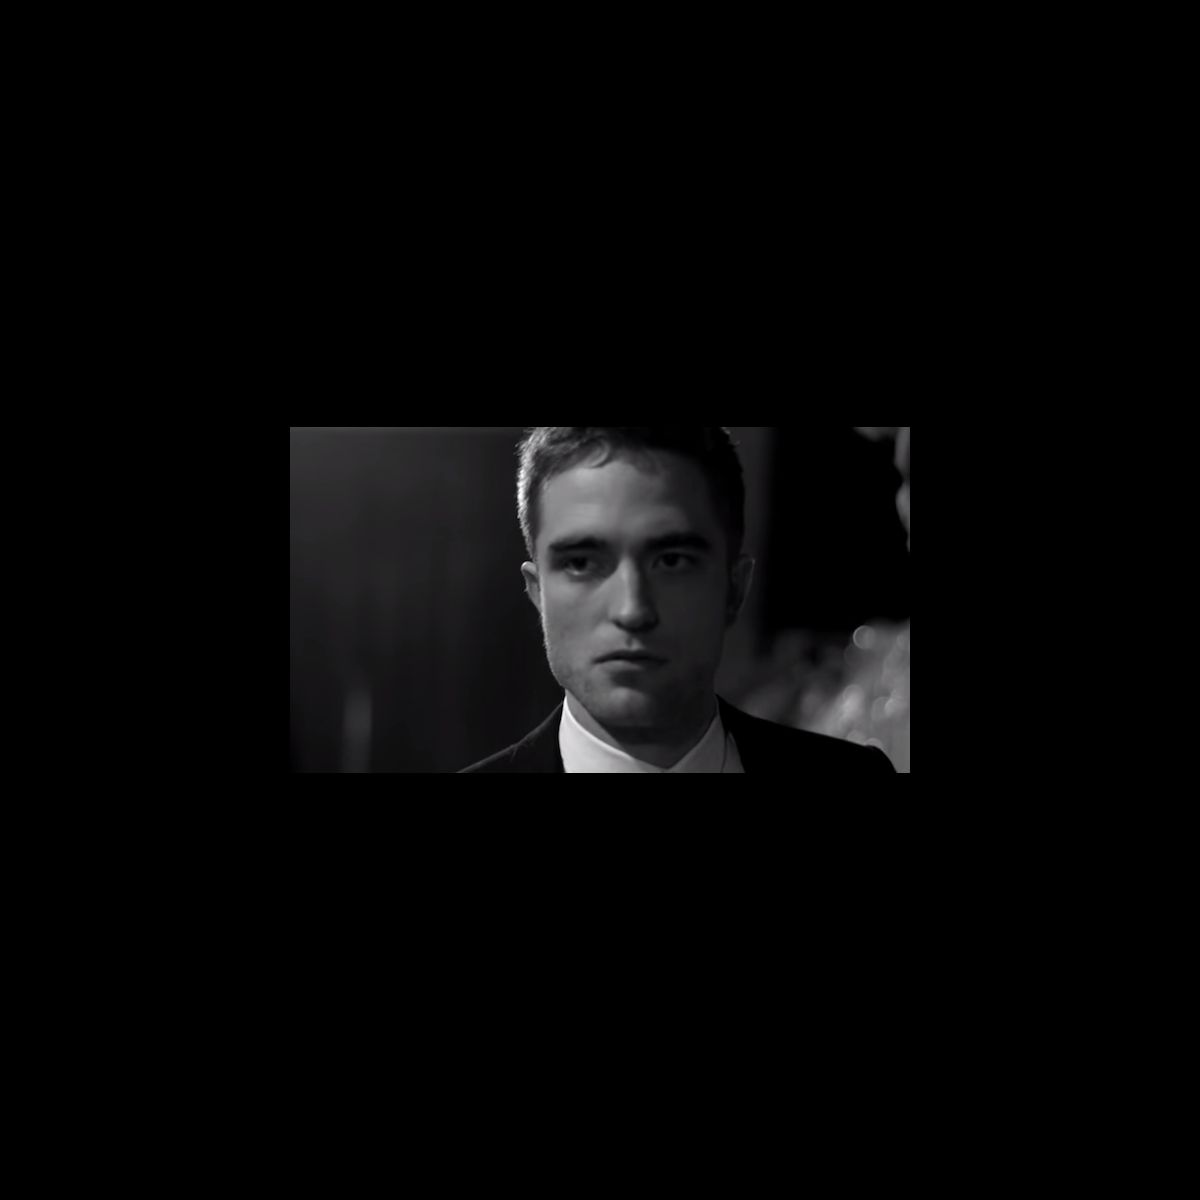 robert pattinson dans une publicit dior vid o puremedias. Black Bedroom Furniture Sets. Home Design Ideas